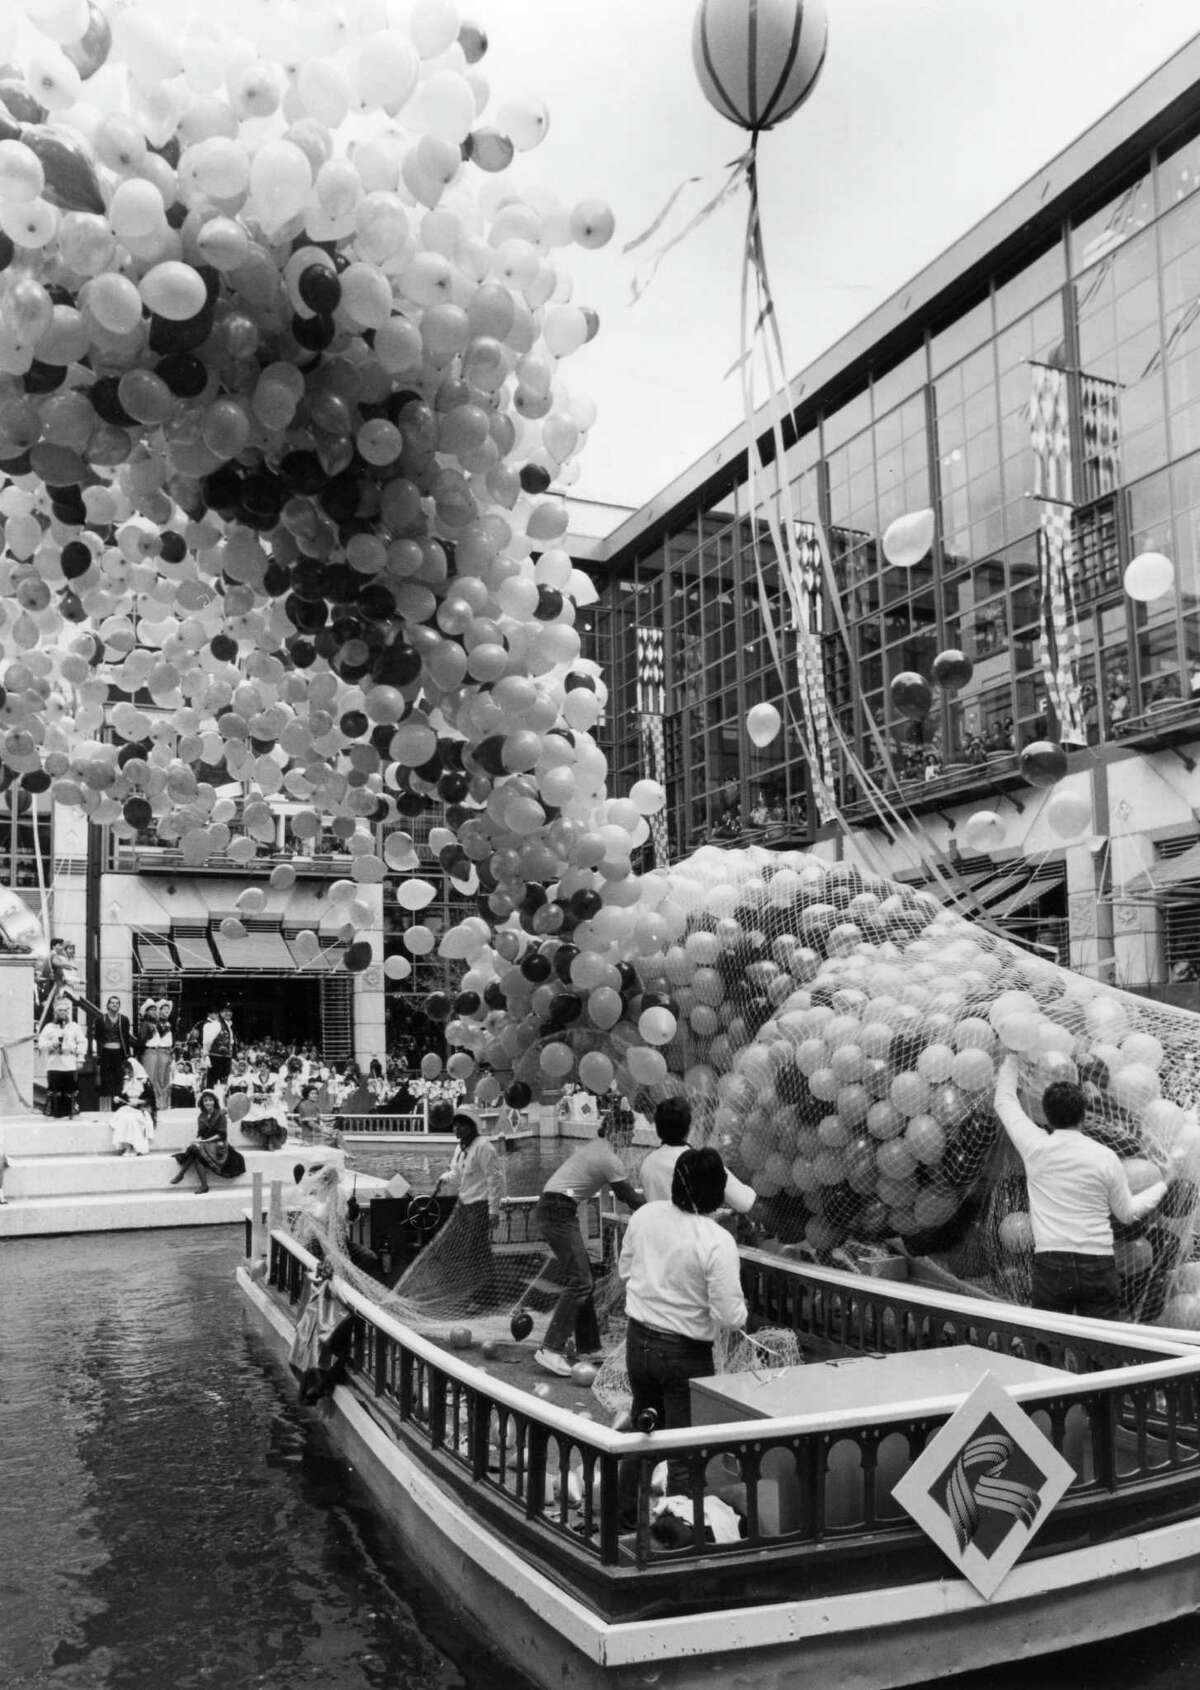 The balloon release for the Rivercenter Mall opening ceremonies, February 20, 1988.